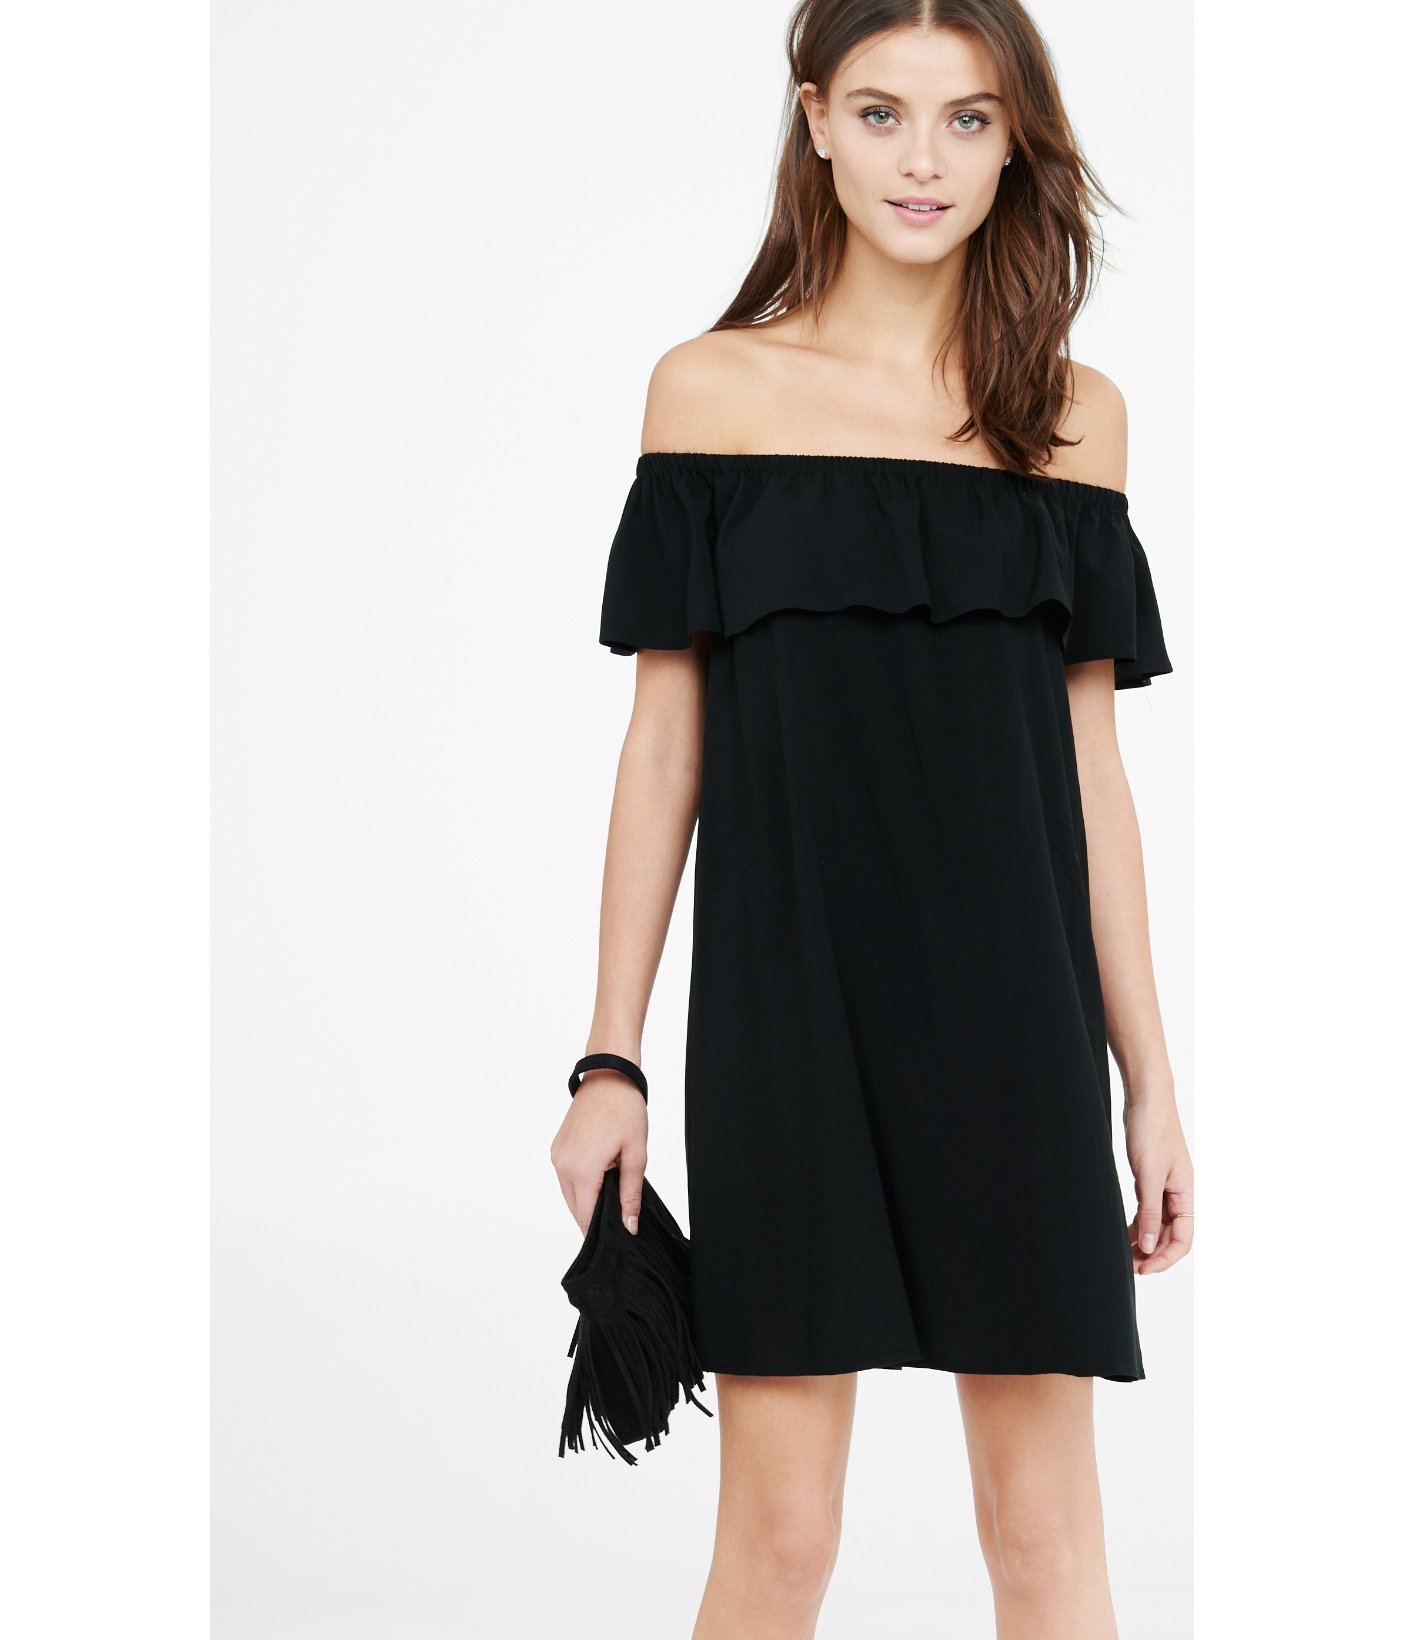 c1beac7ab7d7 Lyst - Express Off The Shoulder Ruffle Trapeze Dress in Black